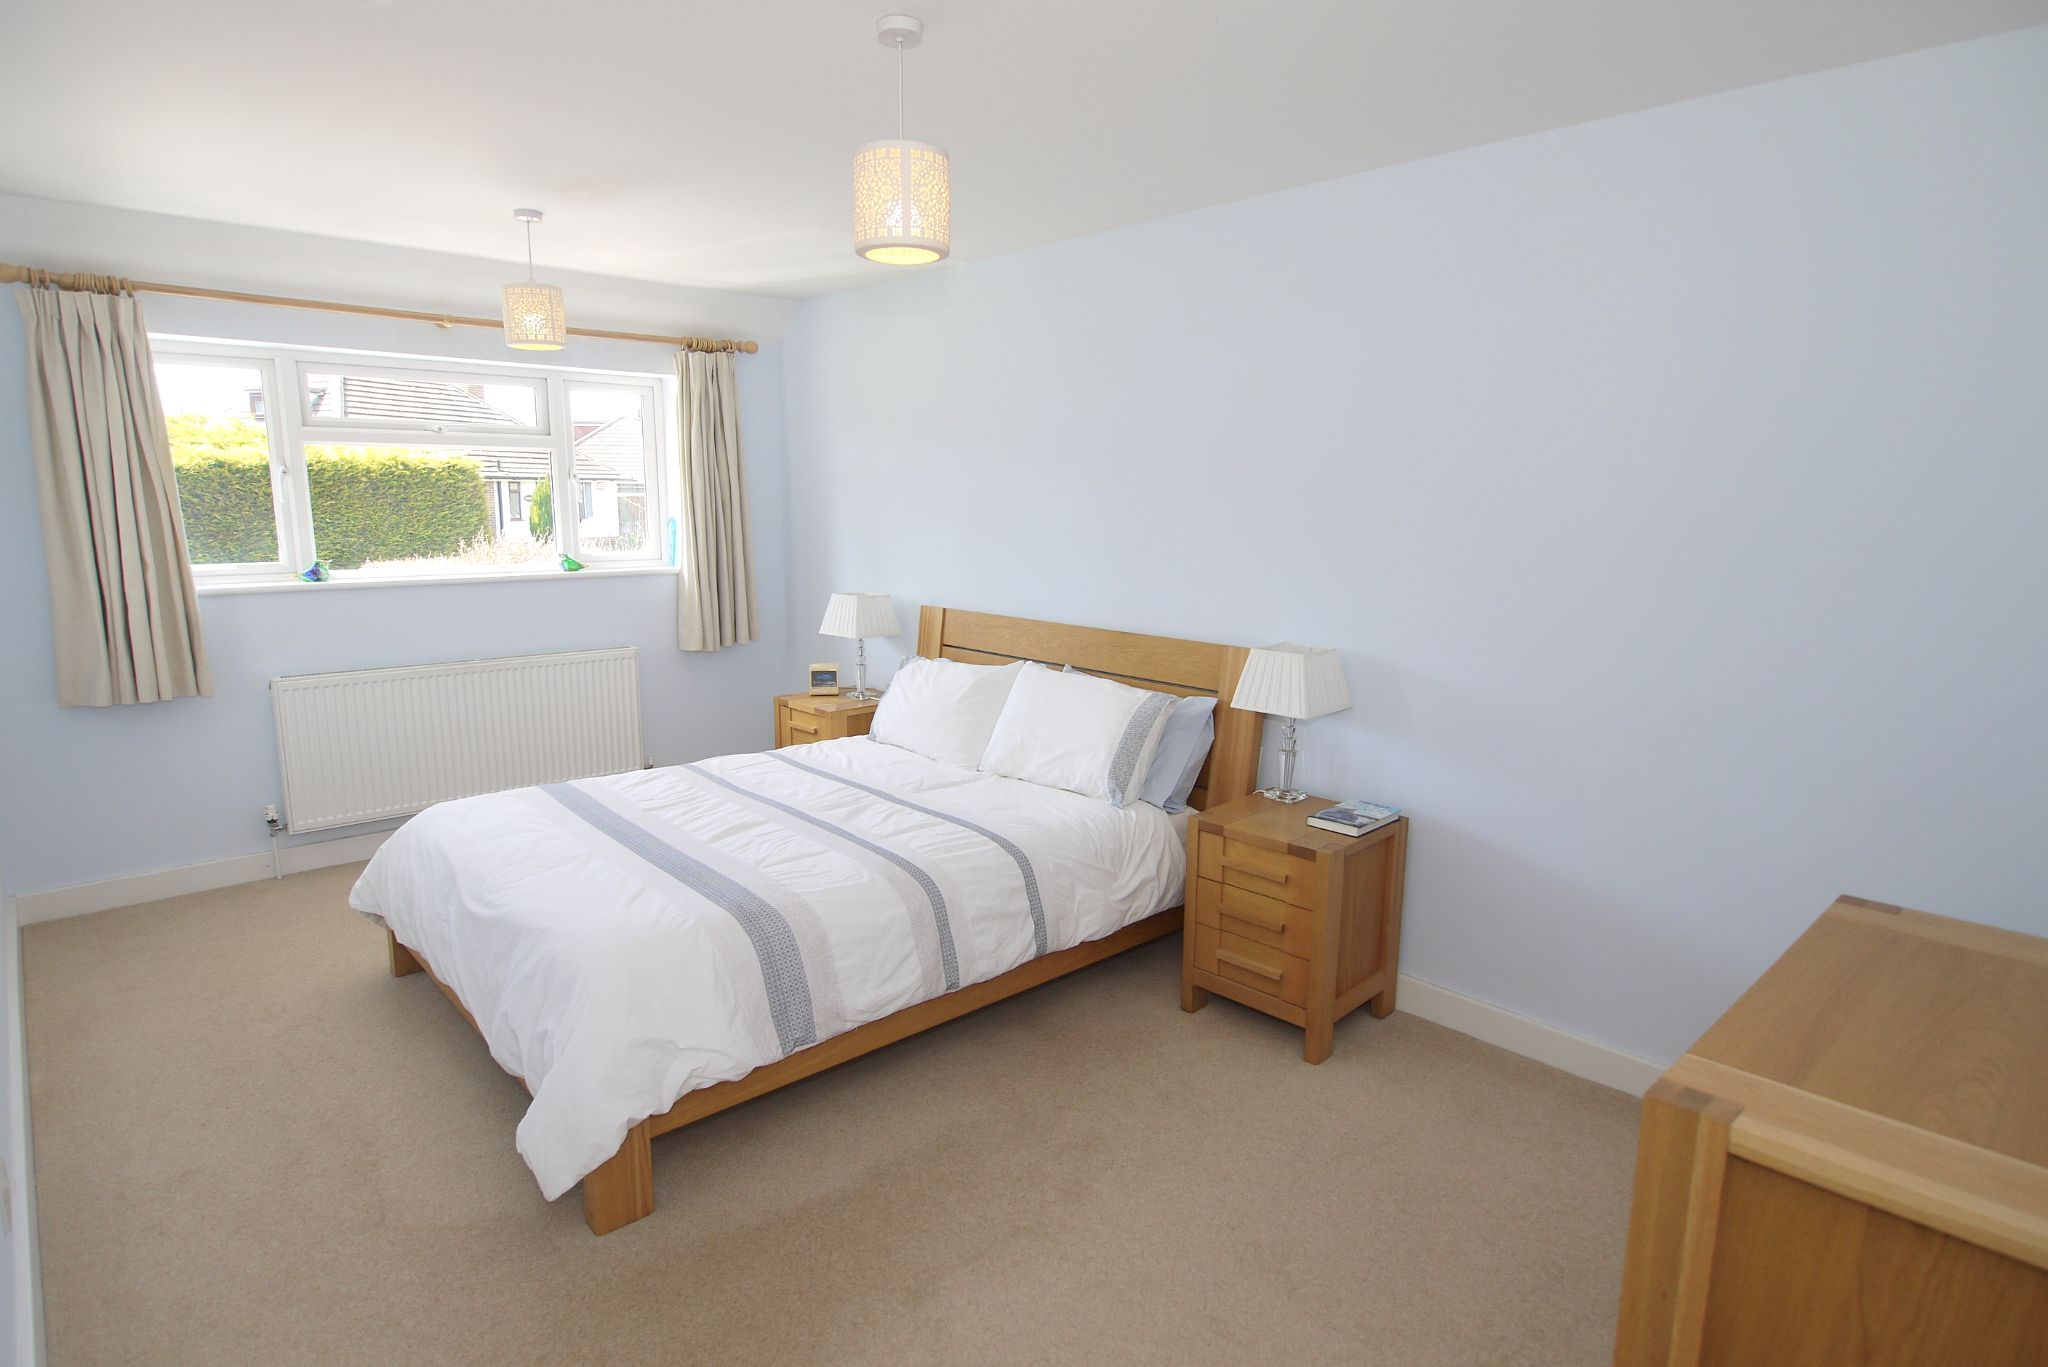 4 bedroom detached house Sale Agreed in Sevenoaks - Photograph 5